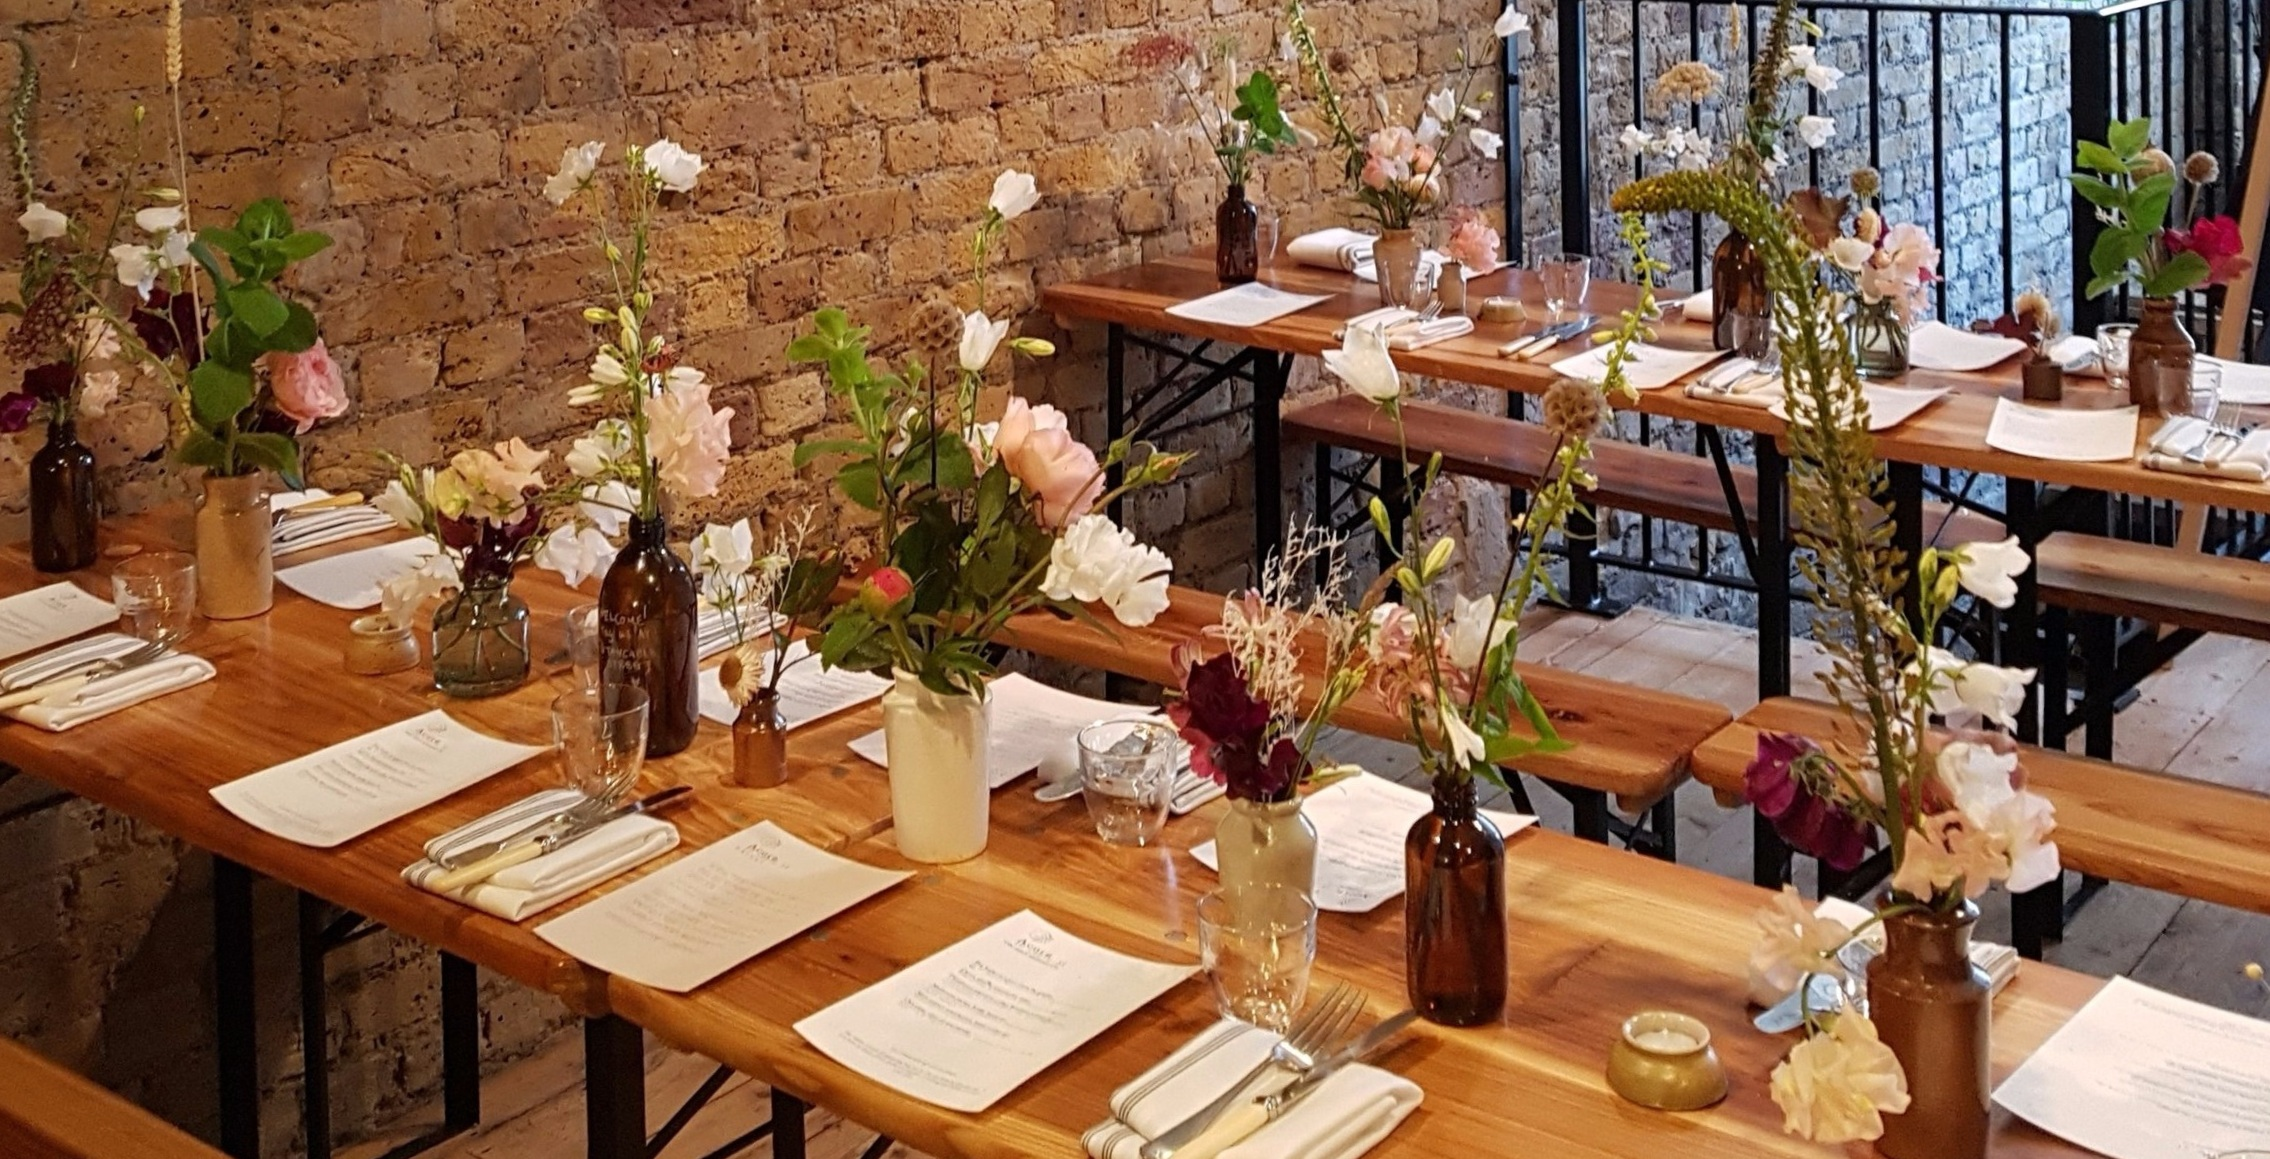 Nice bunch ethical floral design studio flower garden by Sula Acorn Restaurant 10 Cable Street table arrangement